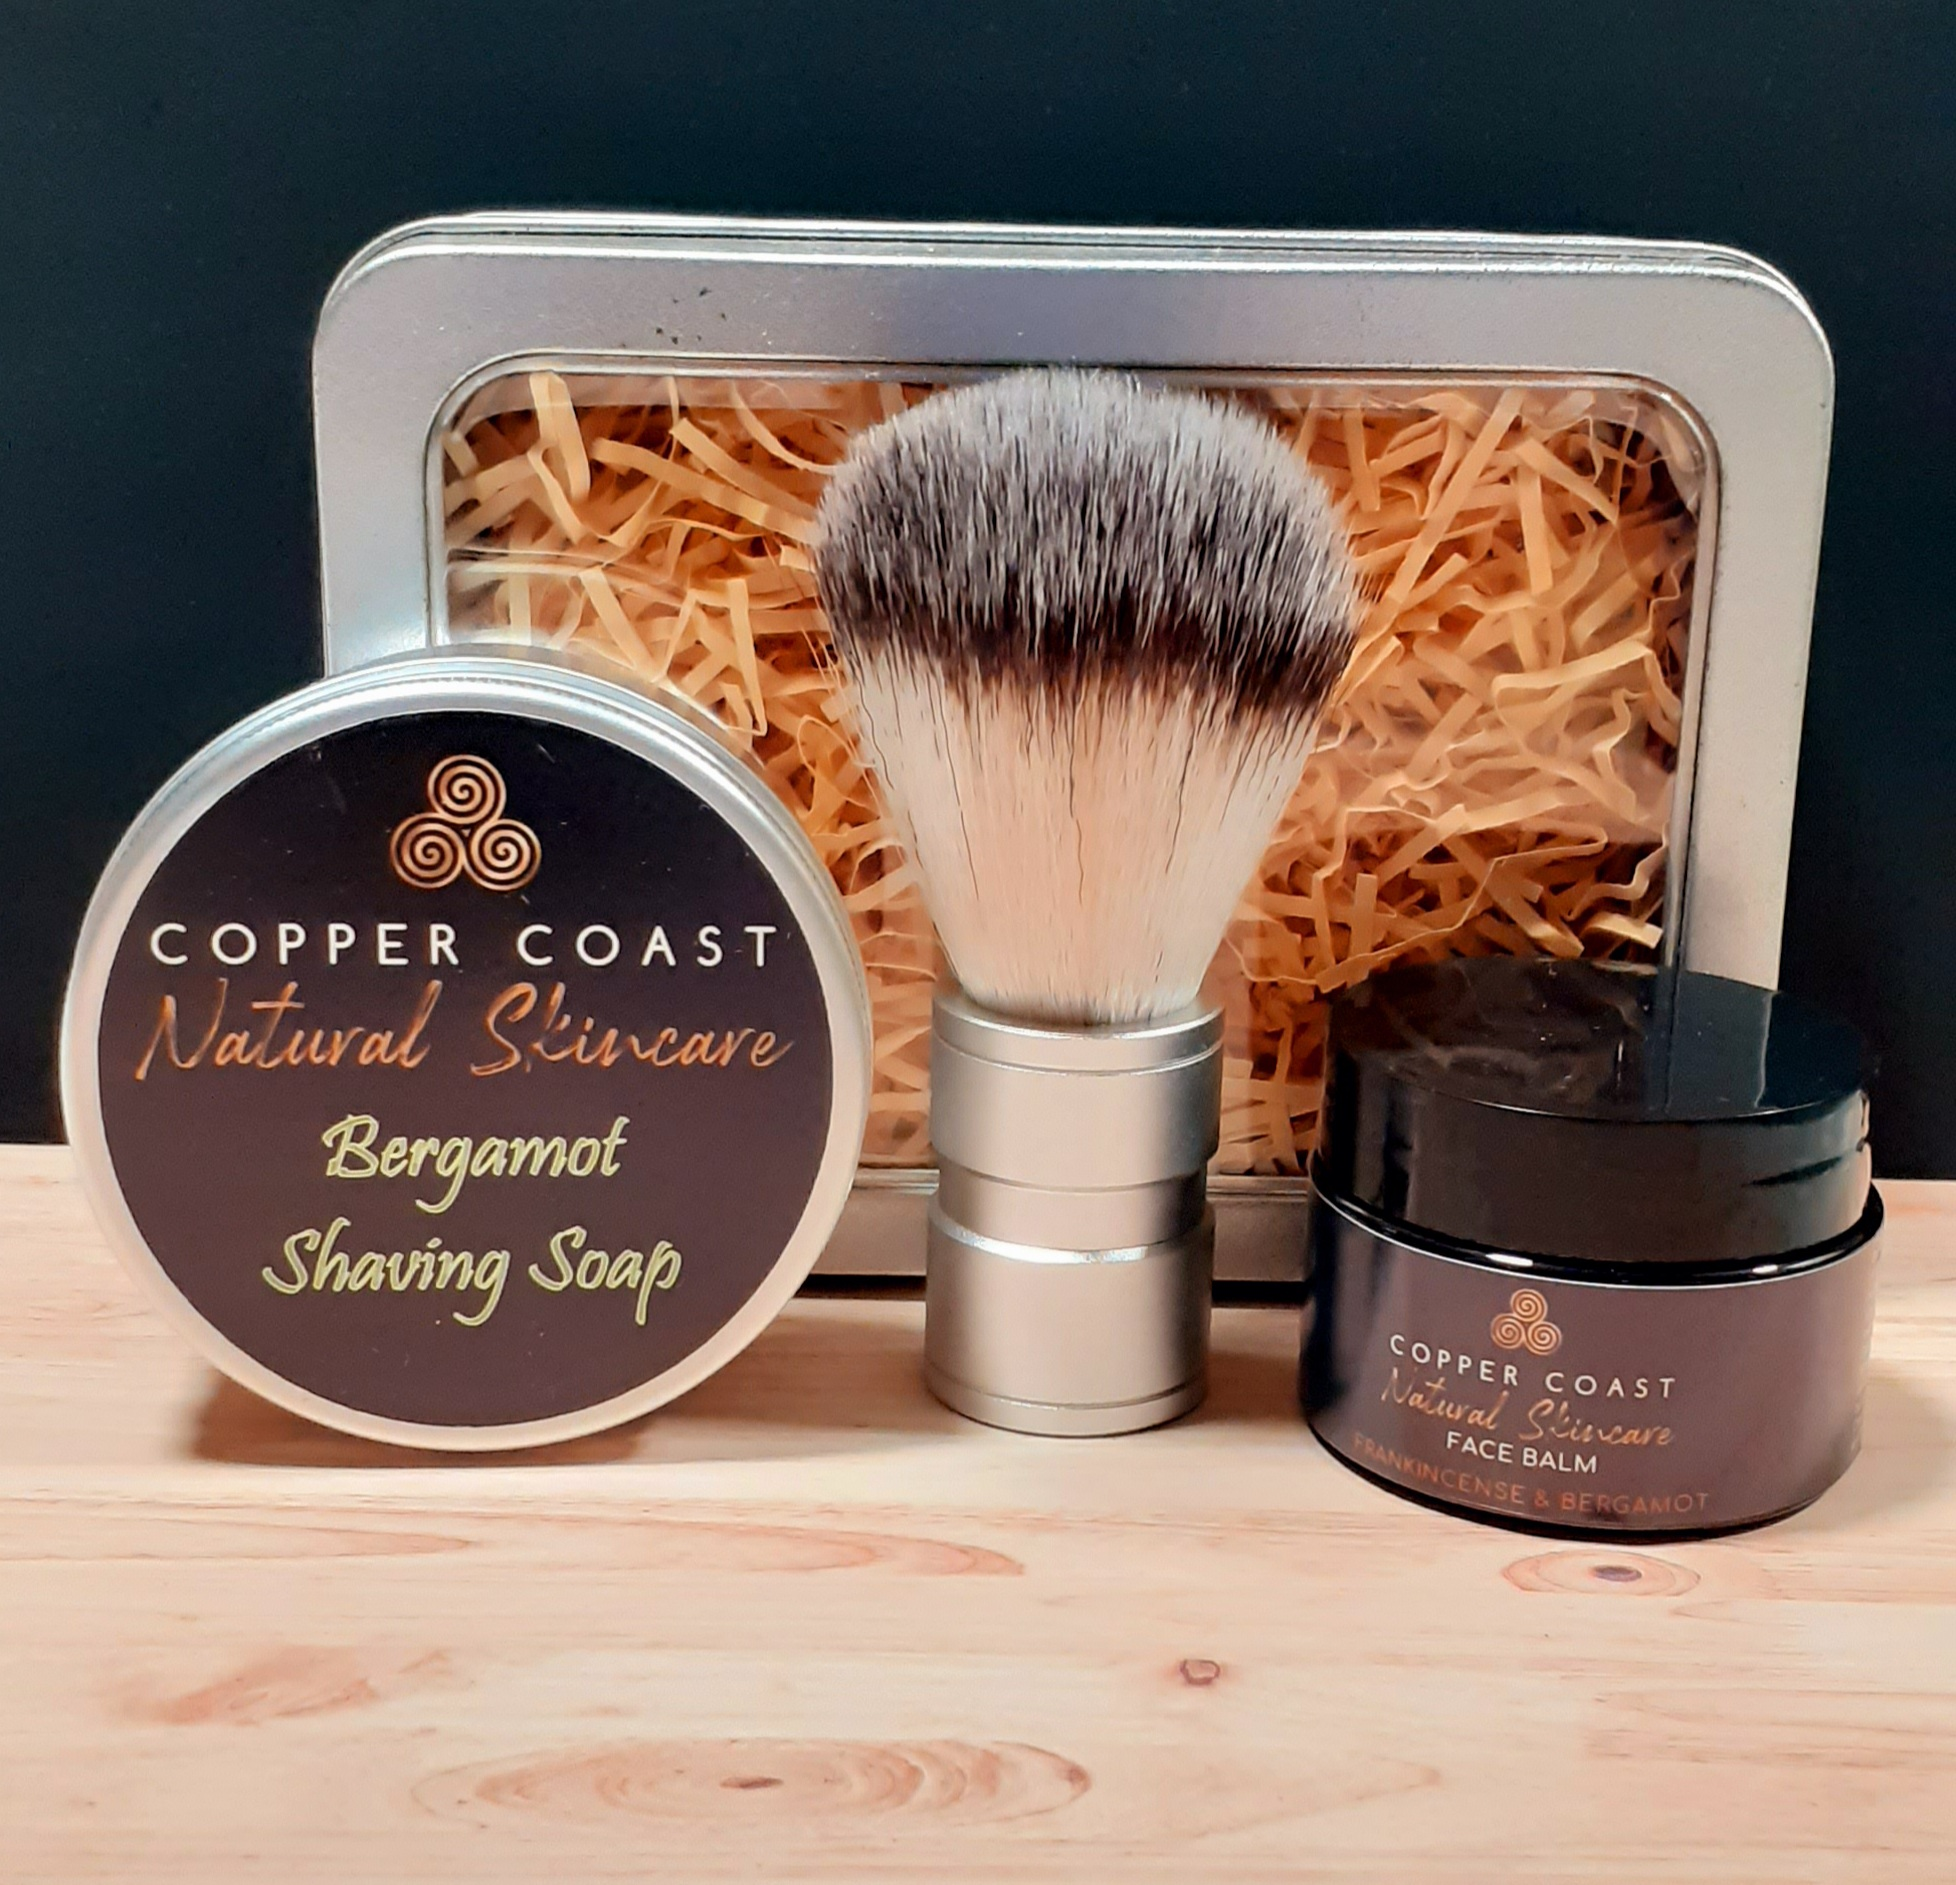 Shaving Gift Set & Face Balm